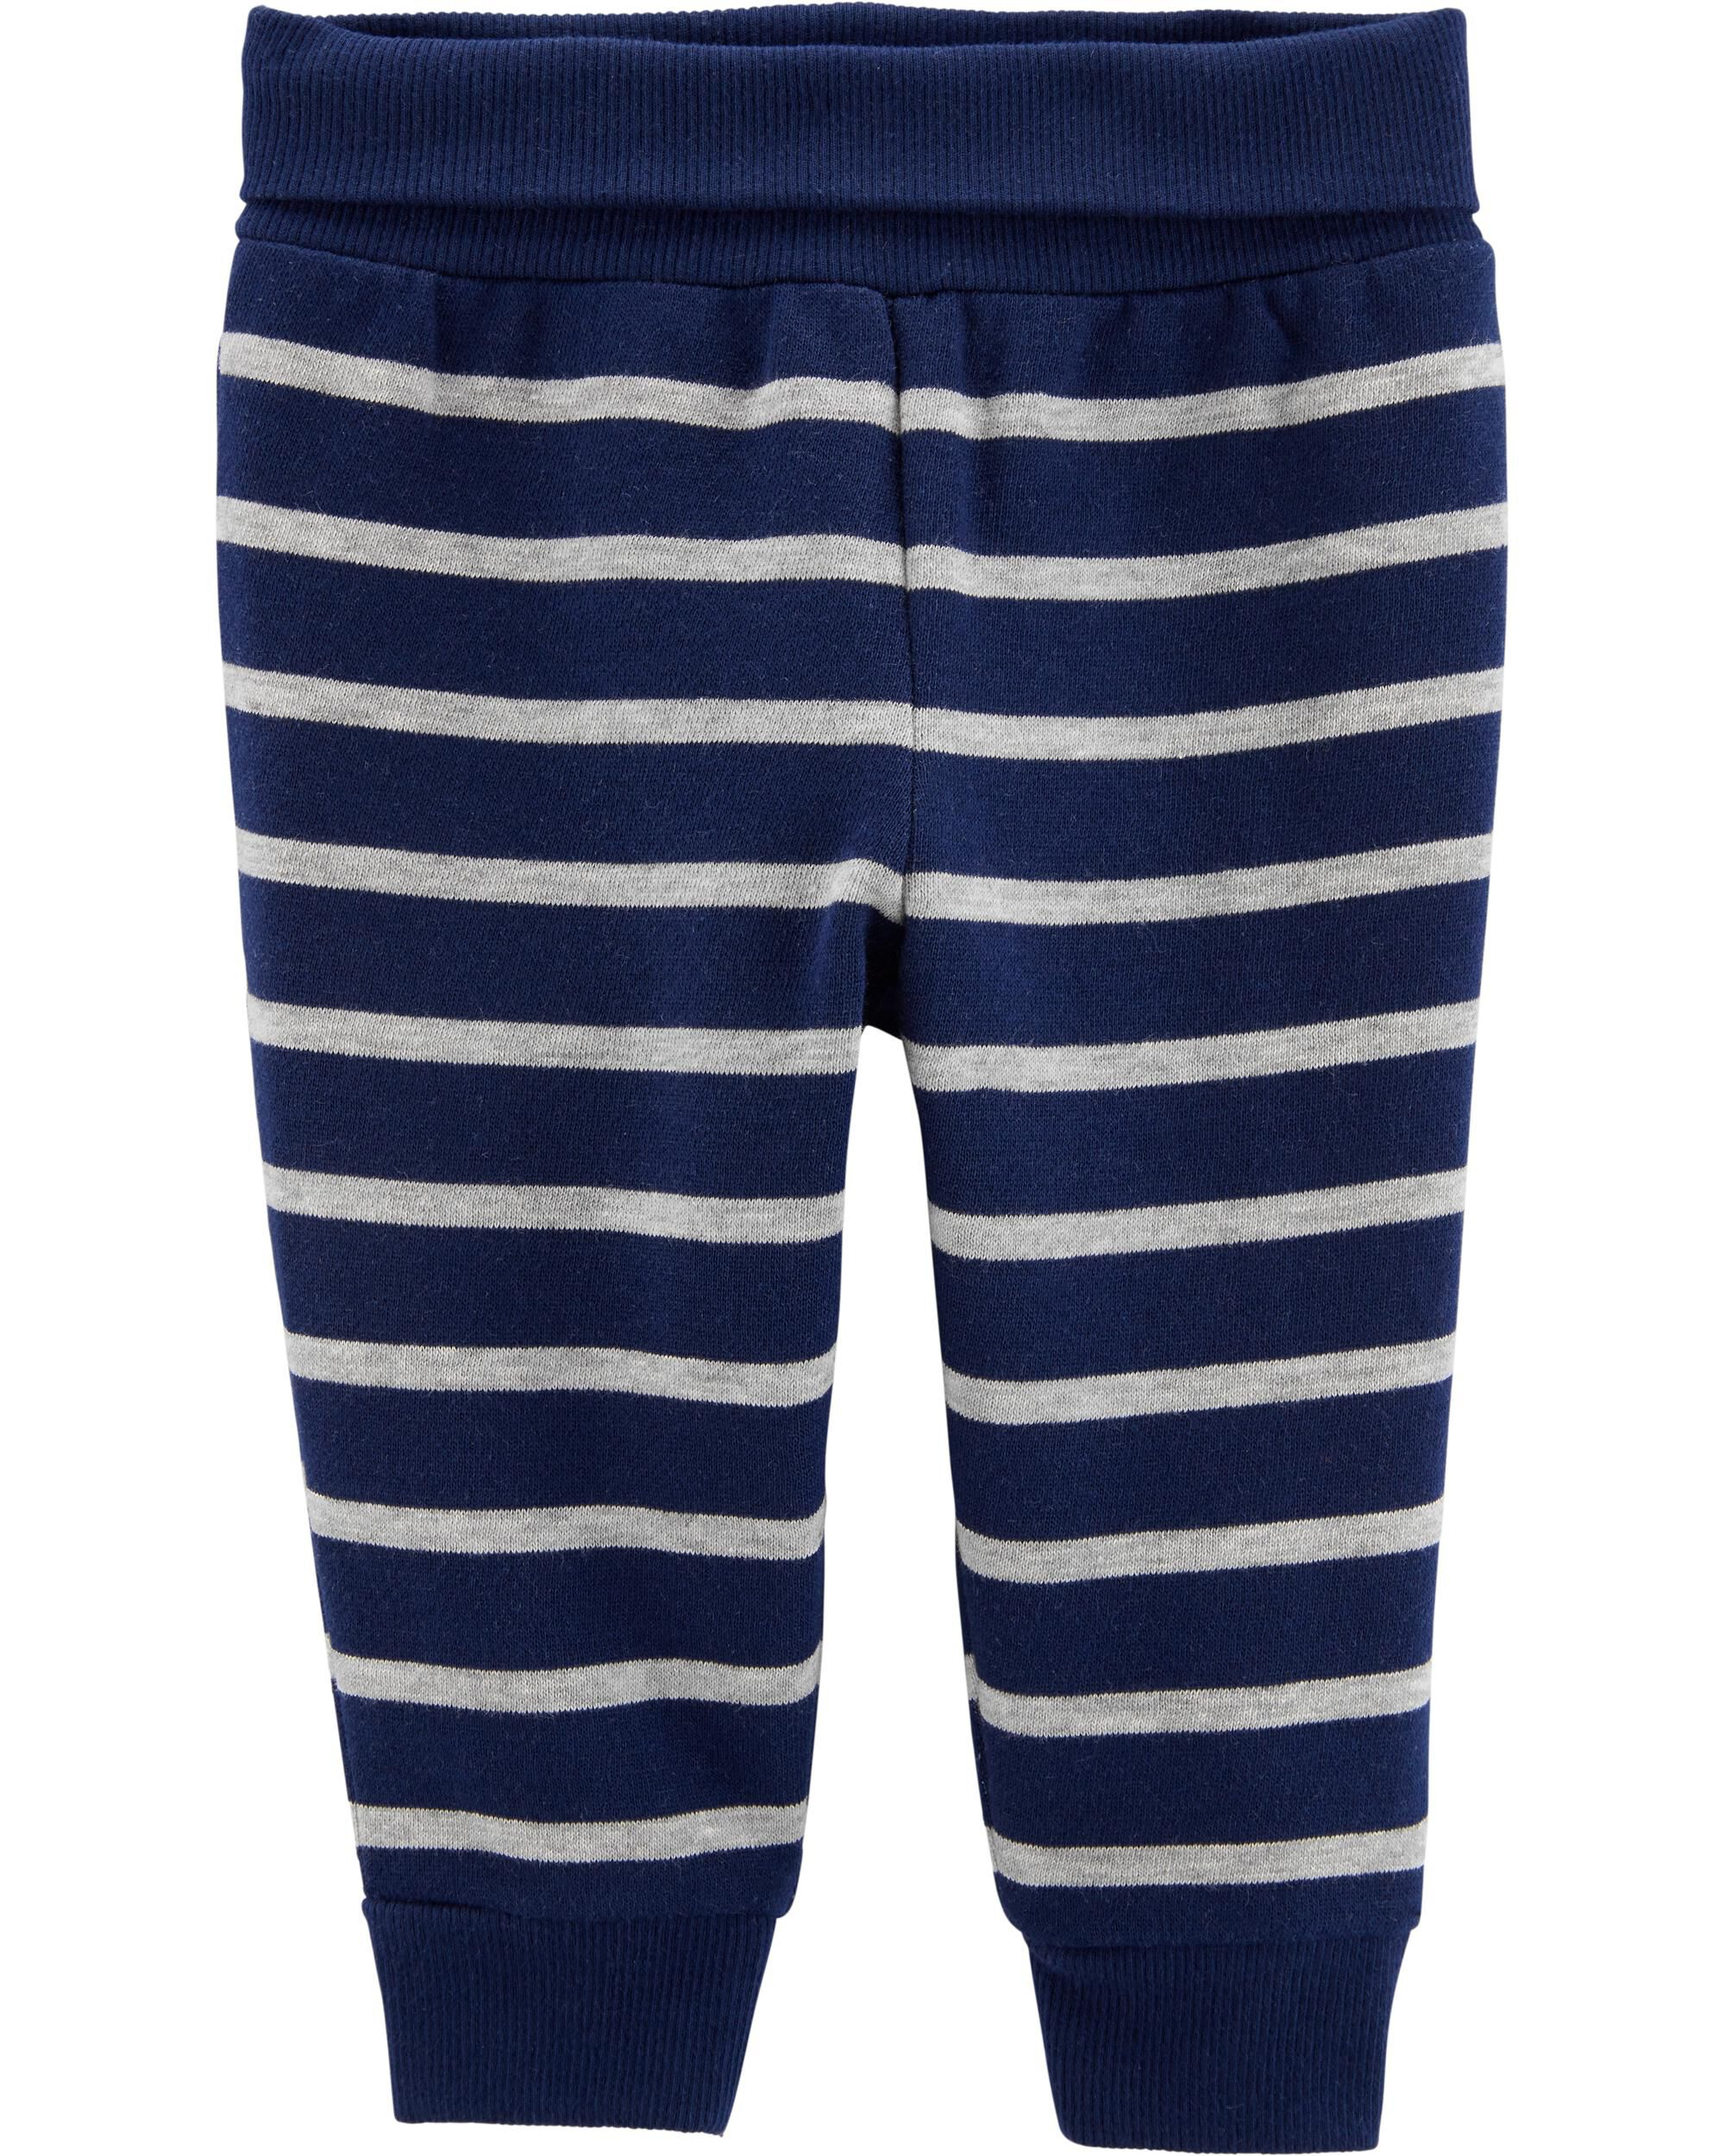 *CLEARANCE* Striped Pull-On Fleece-Lined Pants